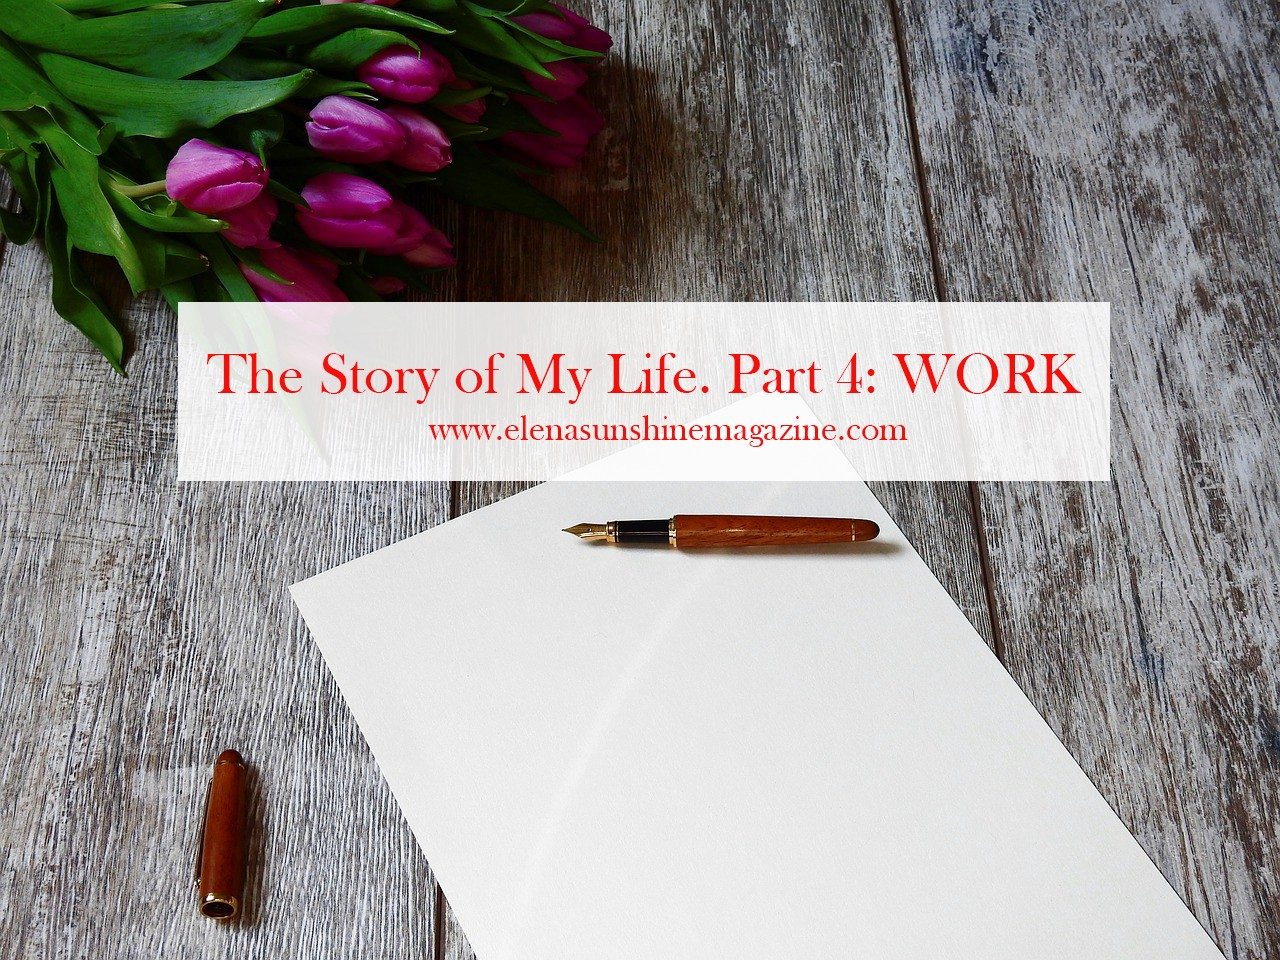 The Story of My Life. Part 4: WORK